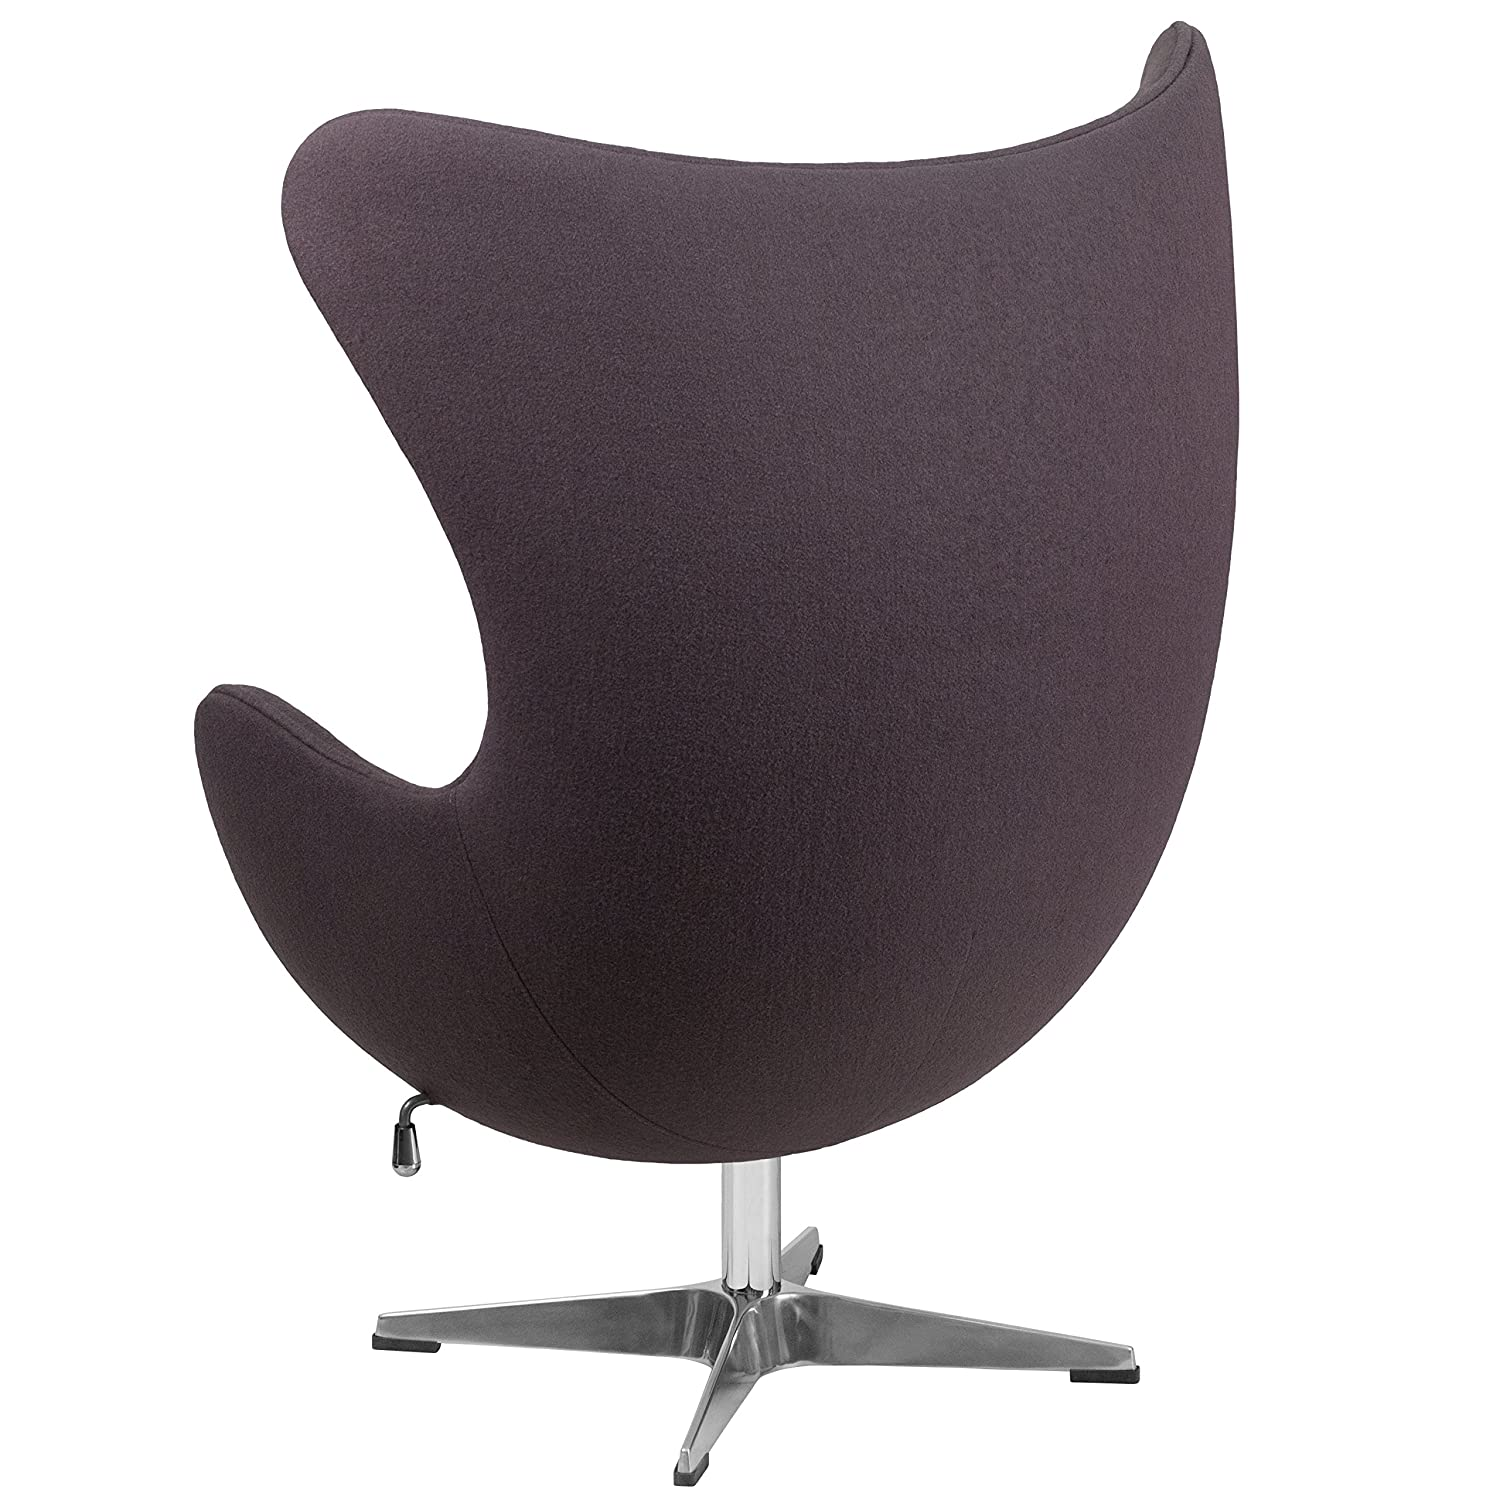 Design Egg Chair amazon com flash furniture gray wool fabric egg chair with tilt lock mechanism kitchen dining